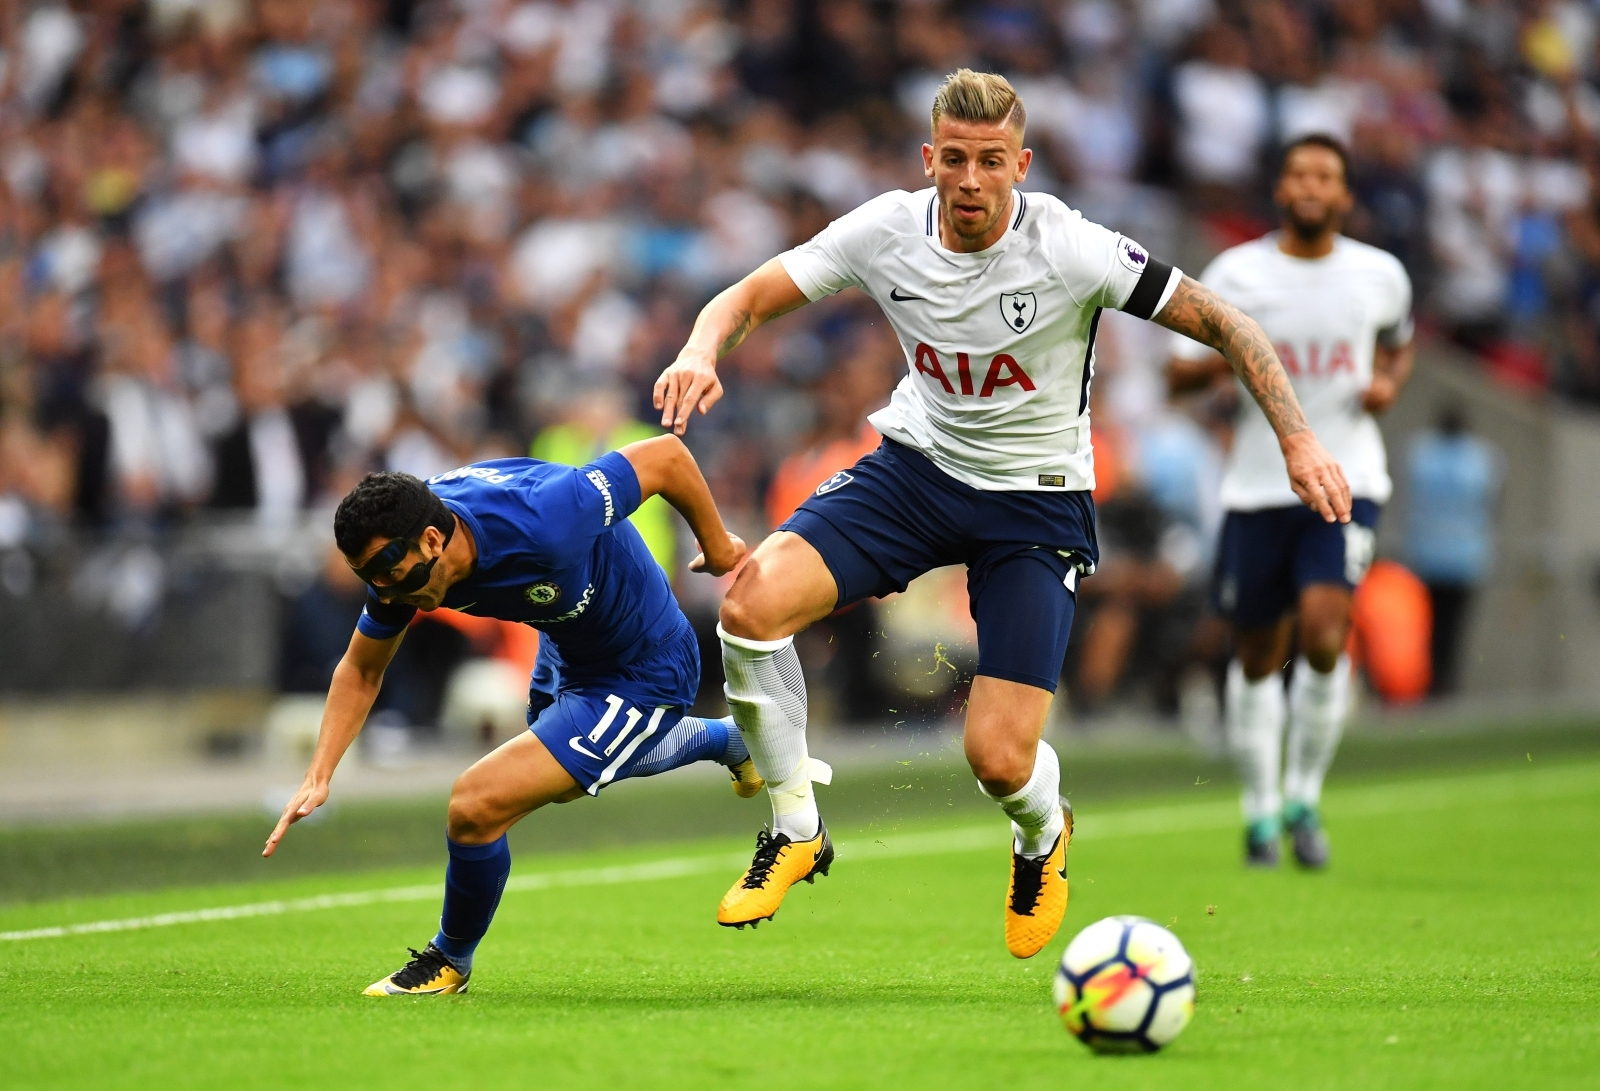 Tottenham told to hand Toby Alderweireld new deal or let him leave